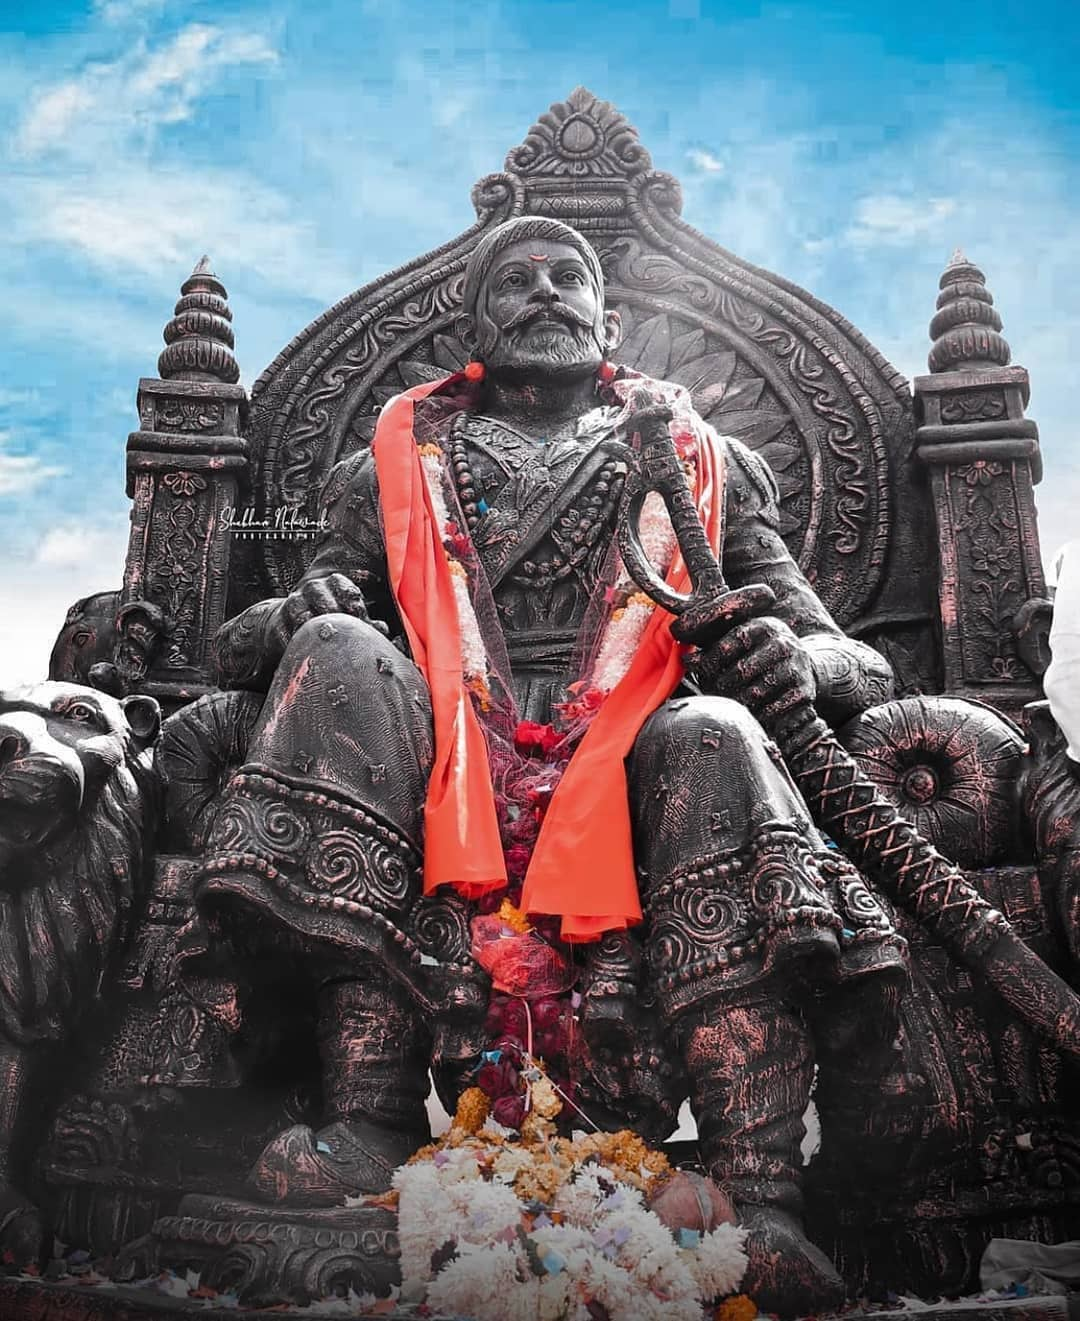 Chhatrapati Shivaji Maharaj: A Leader You Can't Ignore